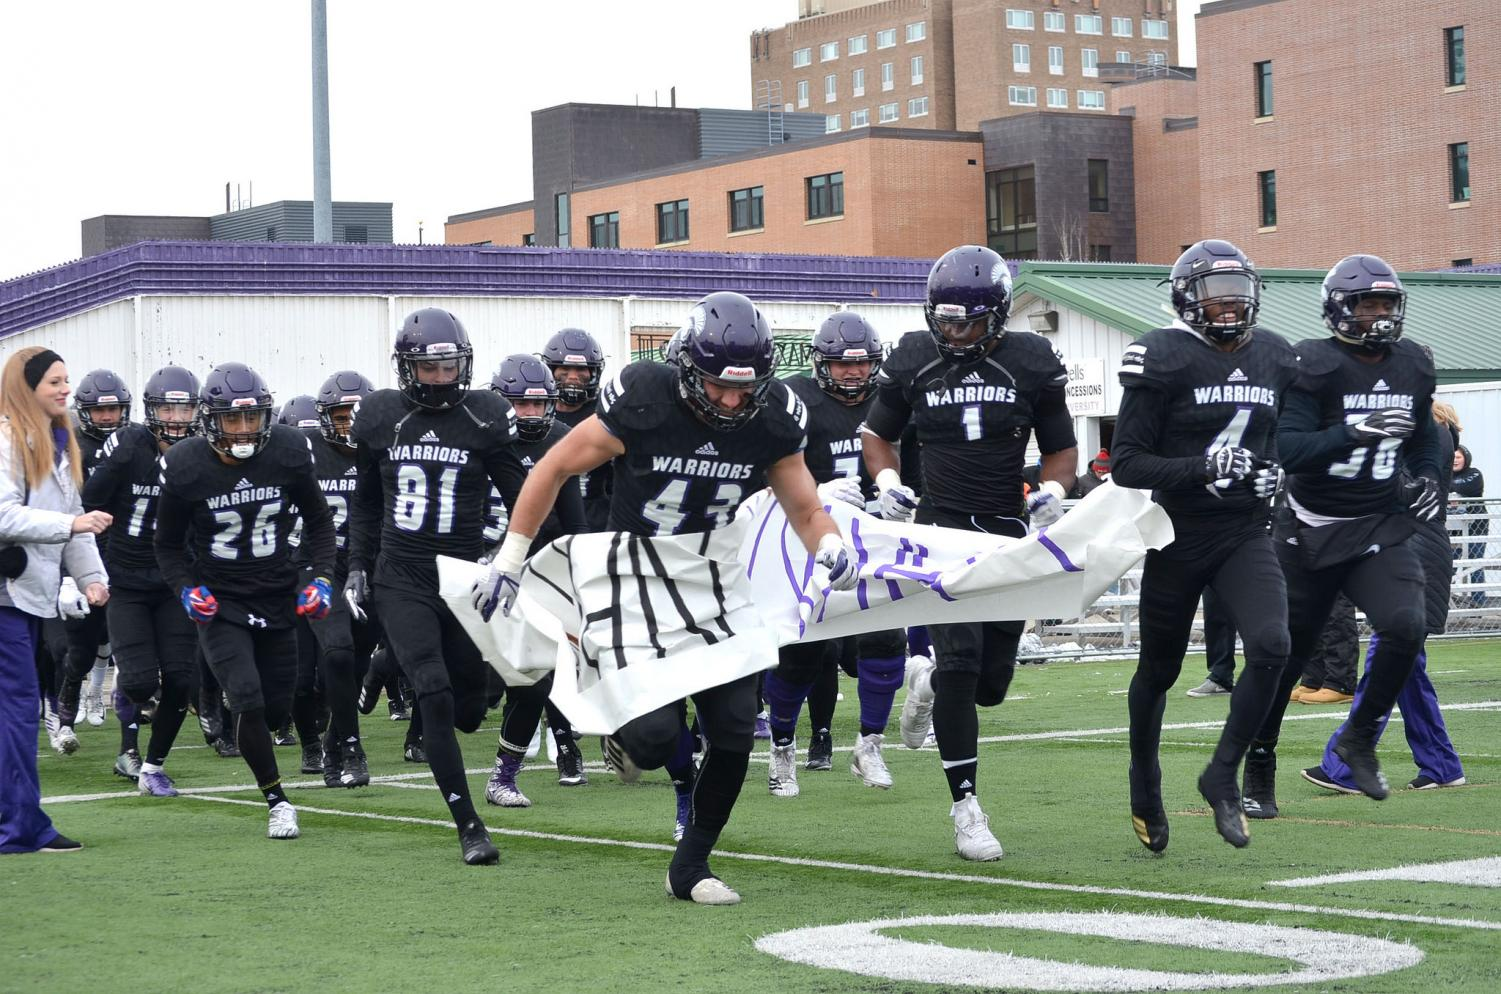 Players charge onto the field, ripping through the banner for the last time this year on Saturday, Nov. 10. This game served as senior day to honor players and cheerleaders on their last game at Winona State. The Warriors took home a 24-20 win against Concordia University, St. Paul bringing the season record to eight wins and three losses.